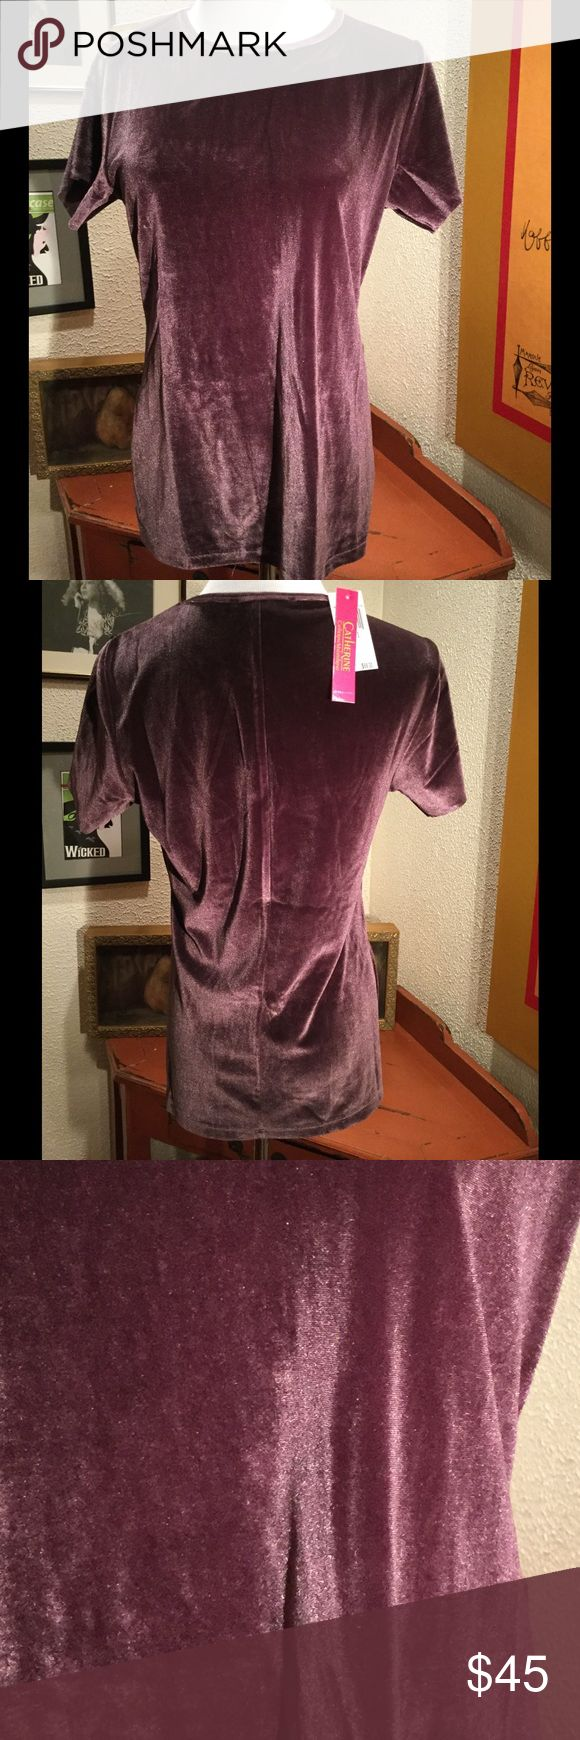 Raspberry Velvet Tee ‼️Final Price‼️ Delicious fit and color! Fantastic with jeans, under a blazer or with a skirt. Great stretch but a looser comfy fit. Catherine Malandrino Tops